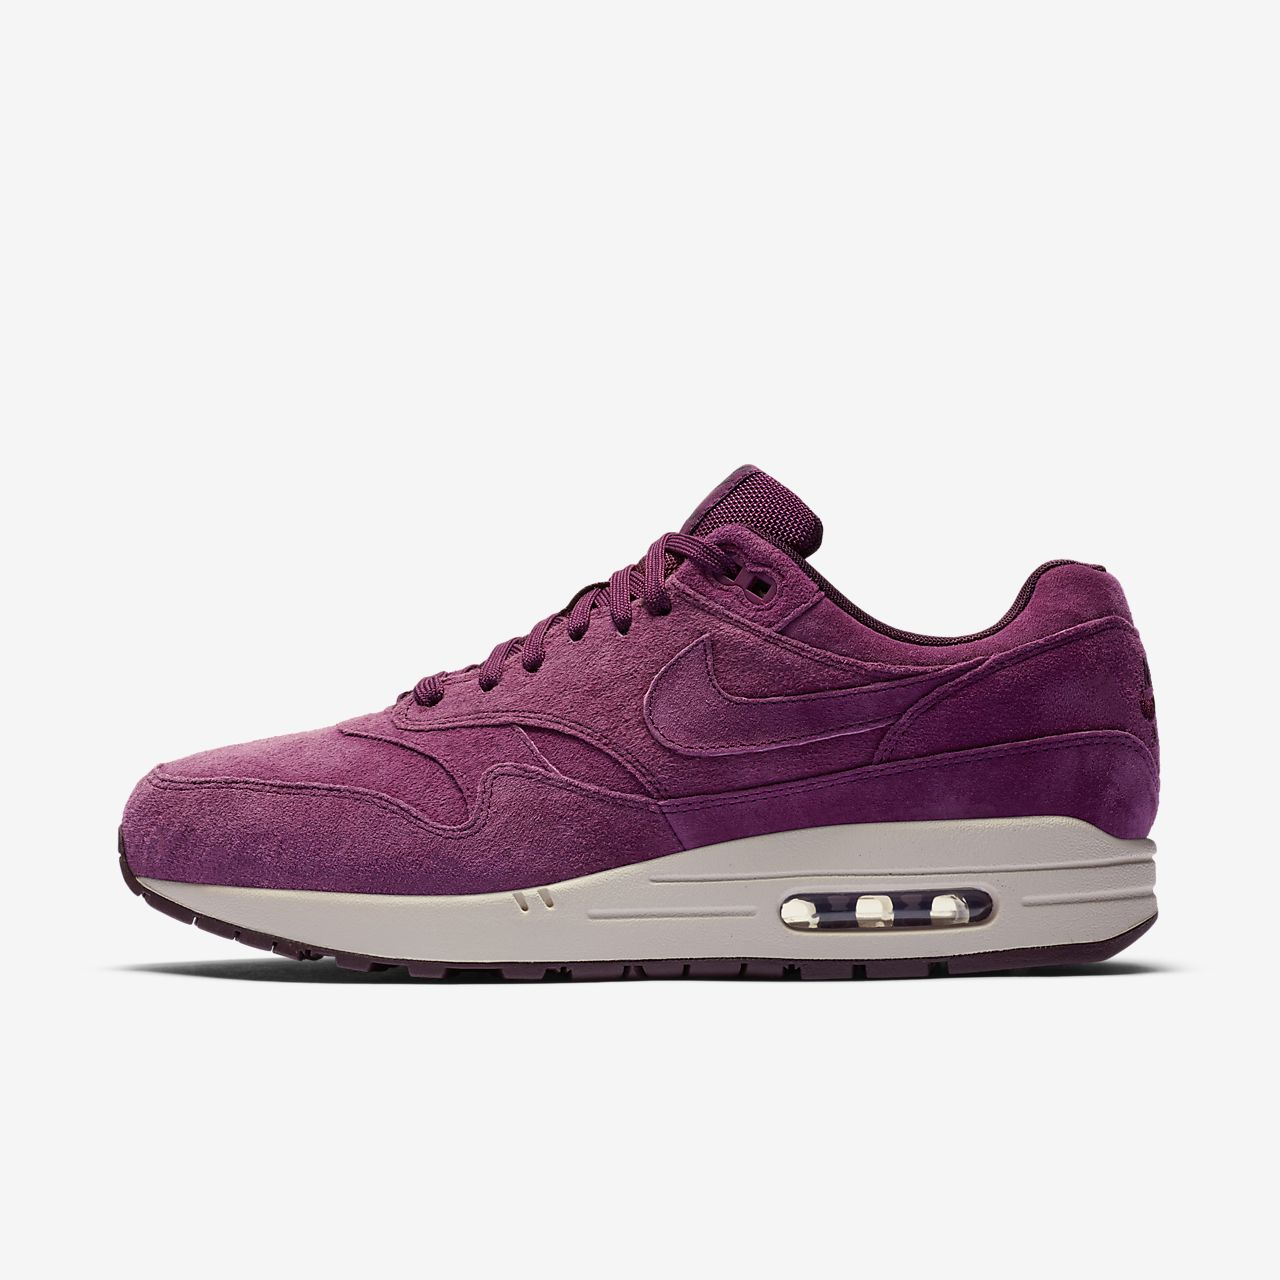 467b135c9393 Nike Air Max 1 Premium Men s Shoe. Nike.com